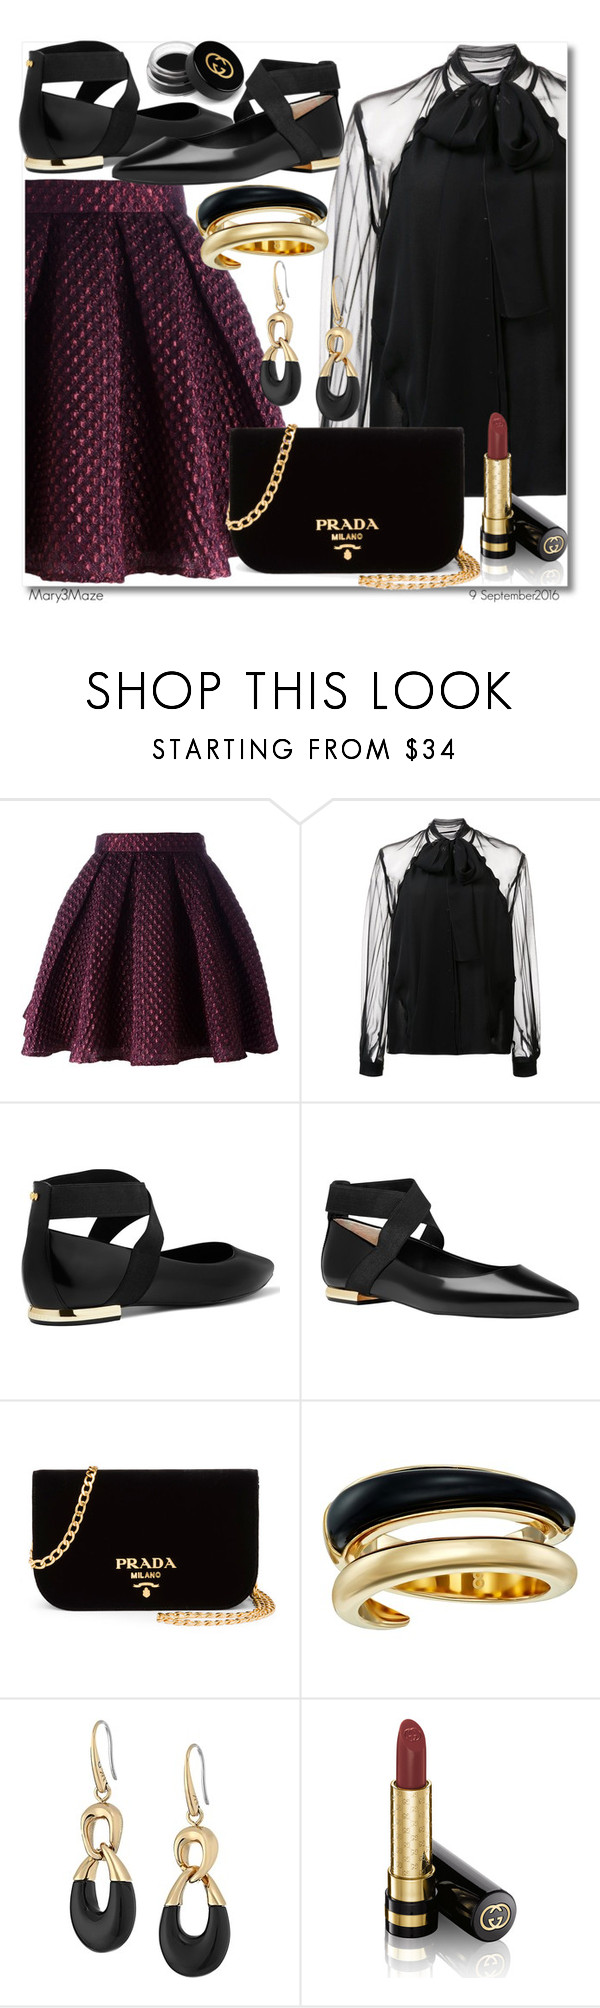 """""""My Dream OOTD! :)"""" by octobermaze ❤ liked on Polyvore featuring Daizy Shely, Carolina Herrera, Ted Baker, Prada, Michael Kors, Gucci and ootd"""